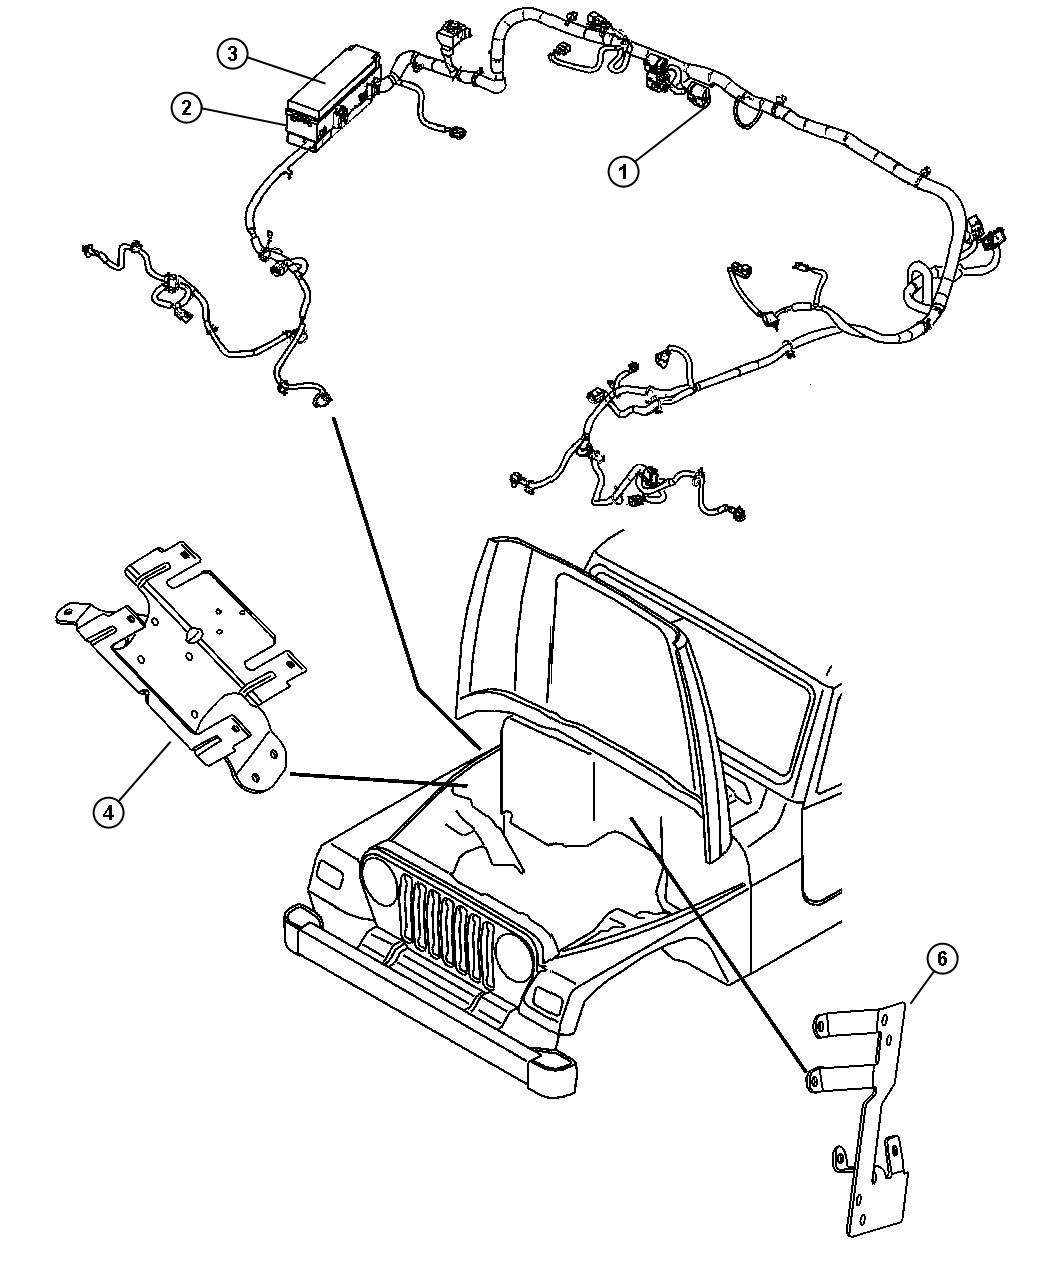 98 jeep tj wiring diagram for a light switch and outlet 56055309ab headlamp to dash nhm bga brw